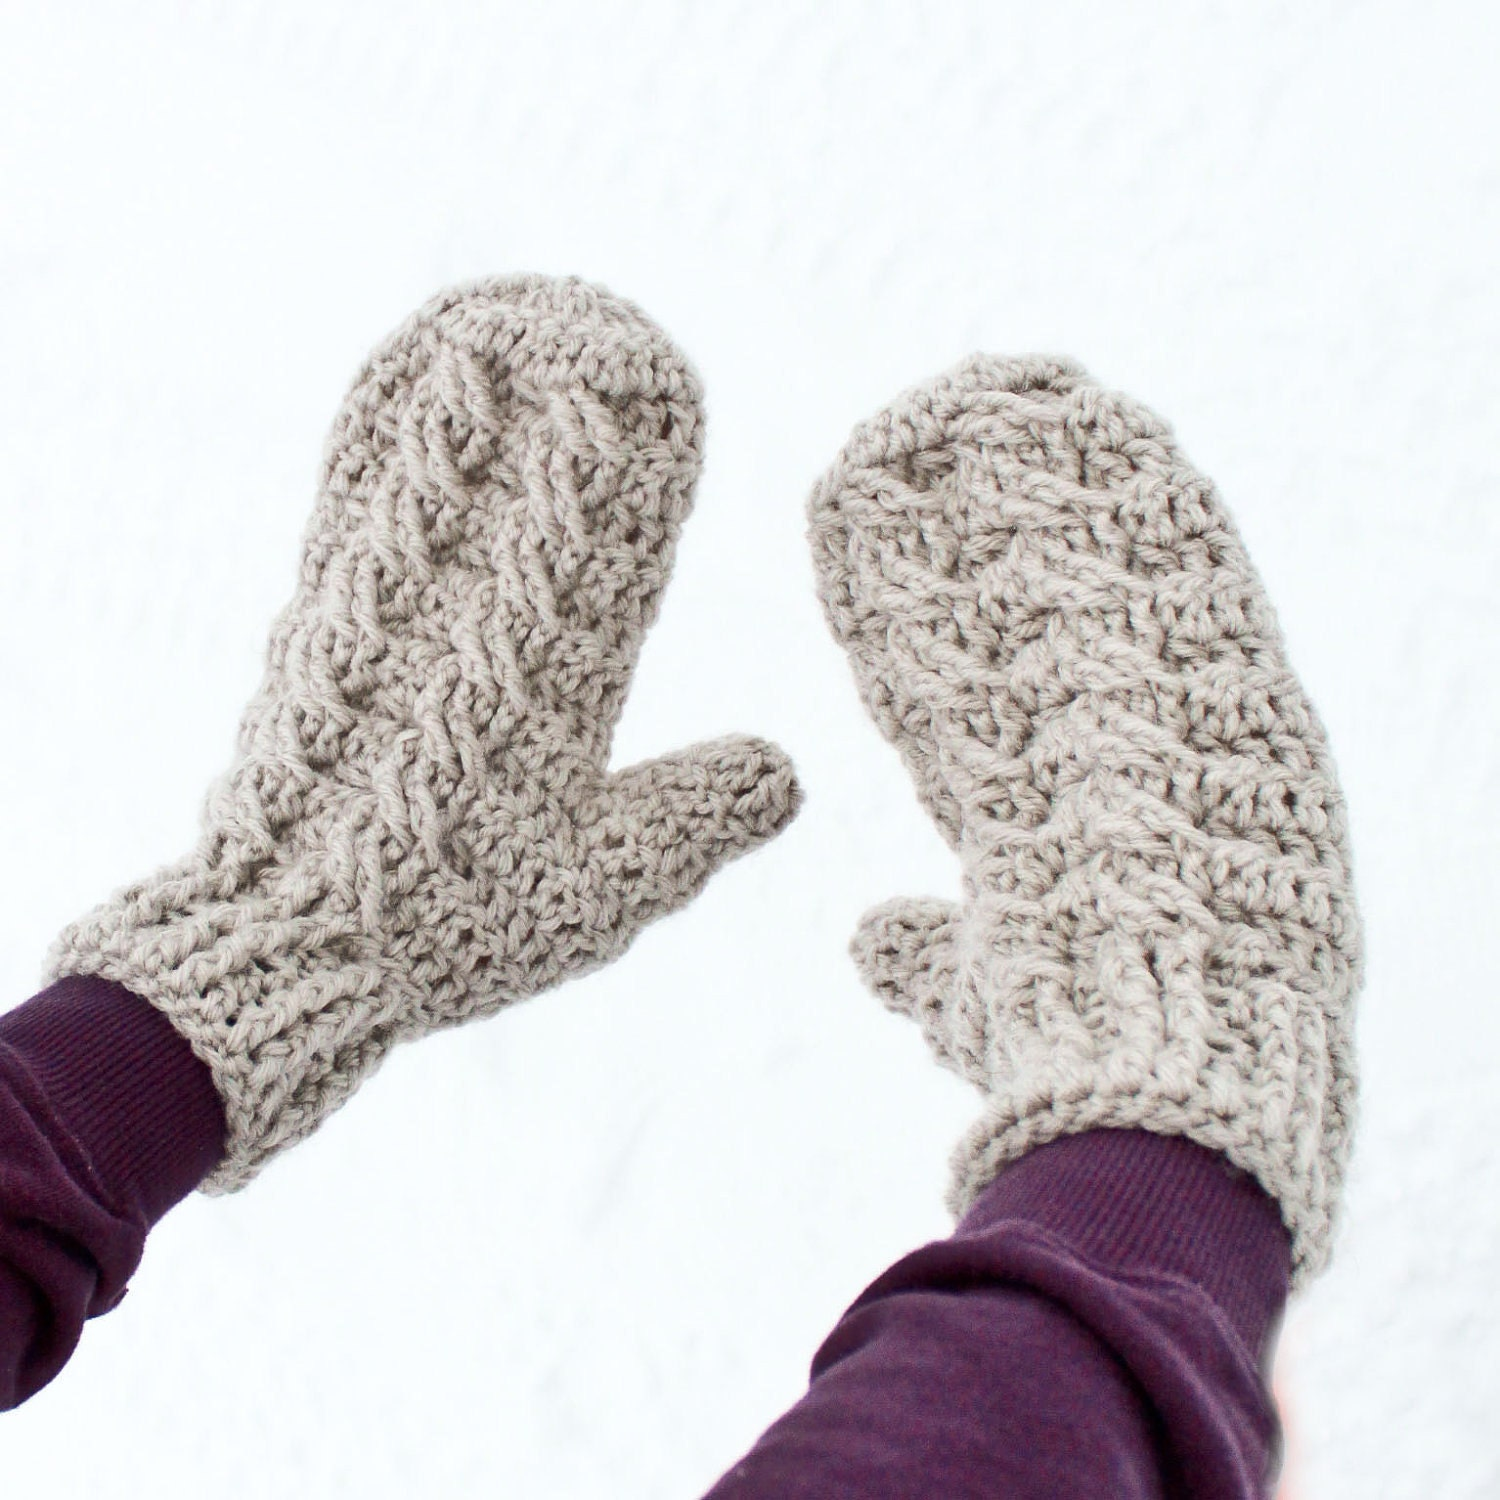 Crochet Free Patterns Mittens : Instant Download Crochet Pattern Cable Mittens and Cowl